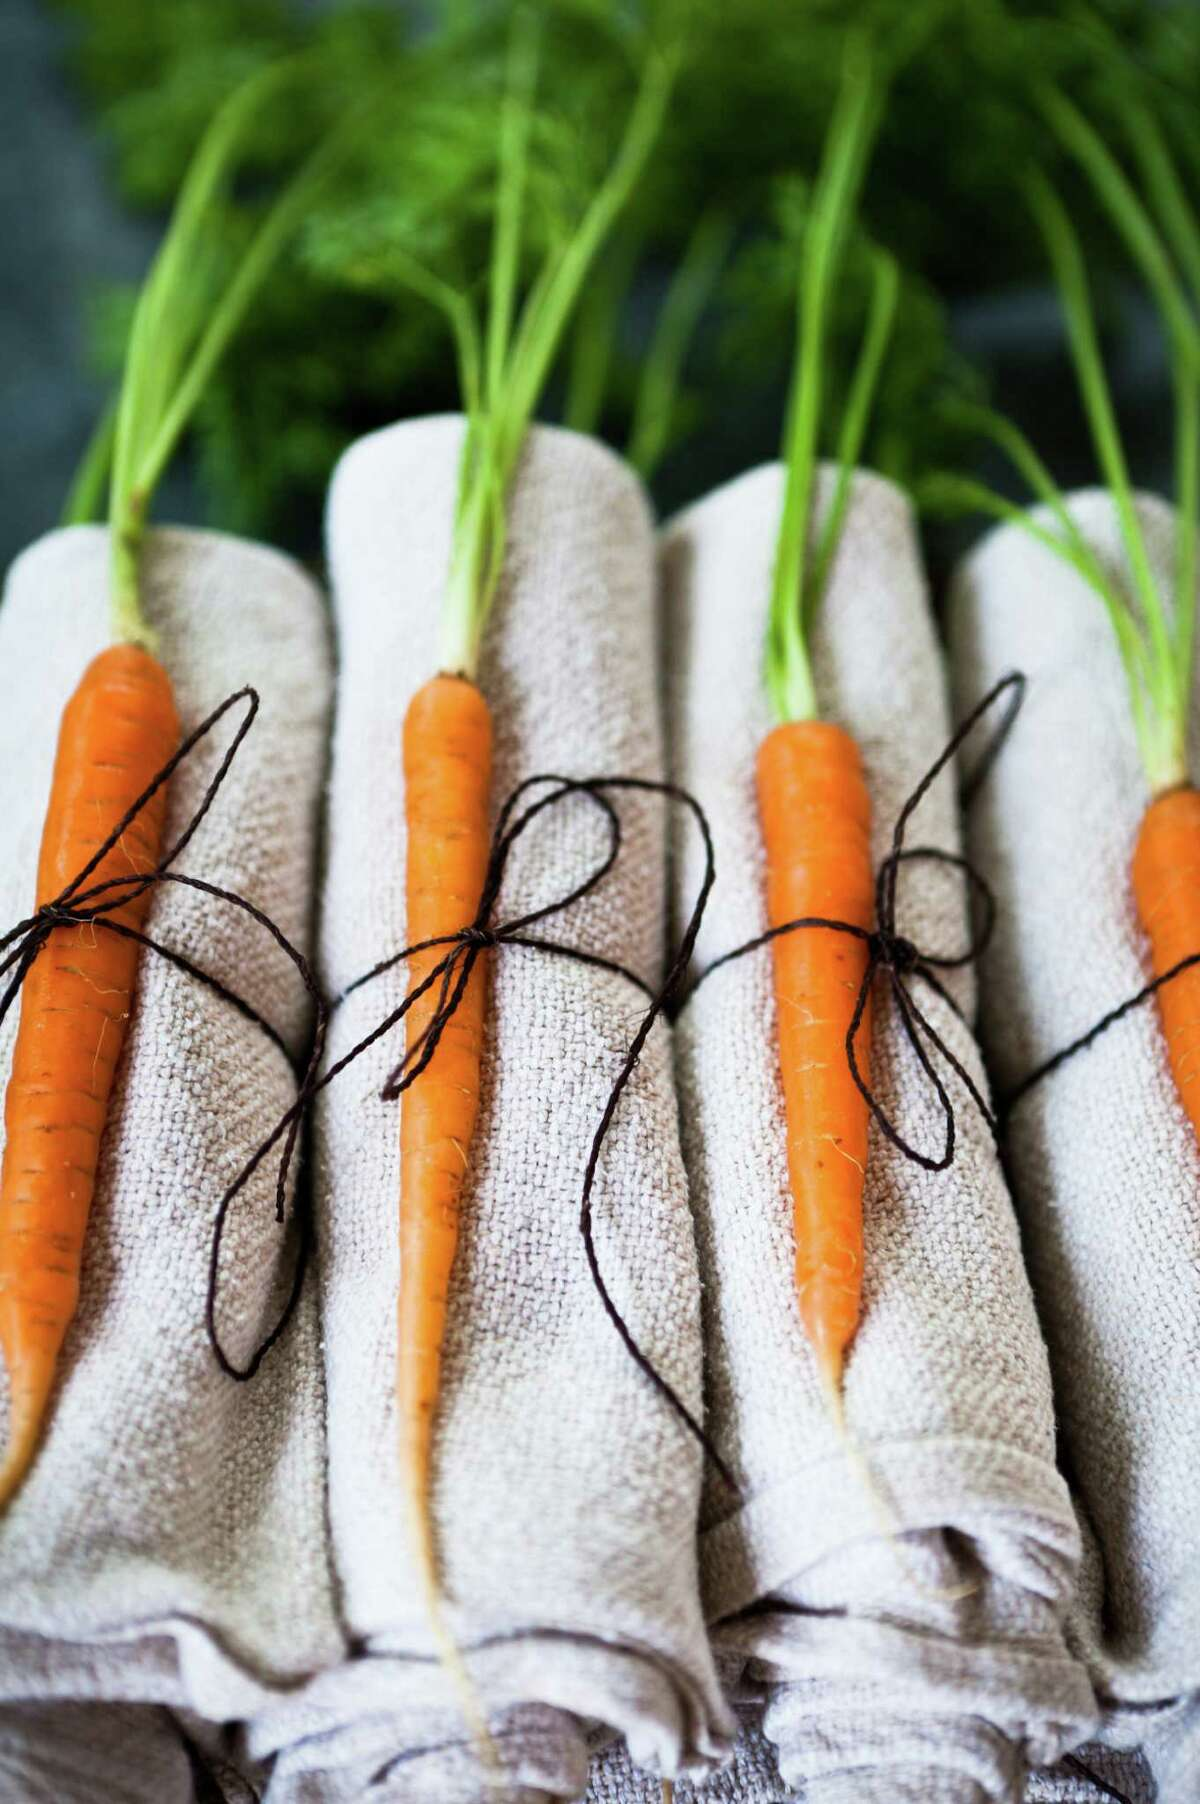 NATURAL NAPKIN FLAIR: Simple, washed hemp napkins get gussied up with tiny baby carrots wrapped in twine. Letting farmers' market produce be the visual hero of your party, you can't go wrong.